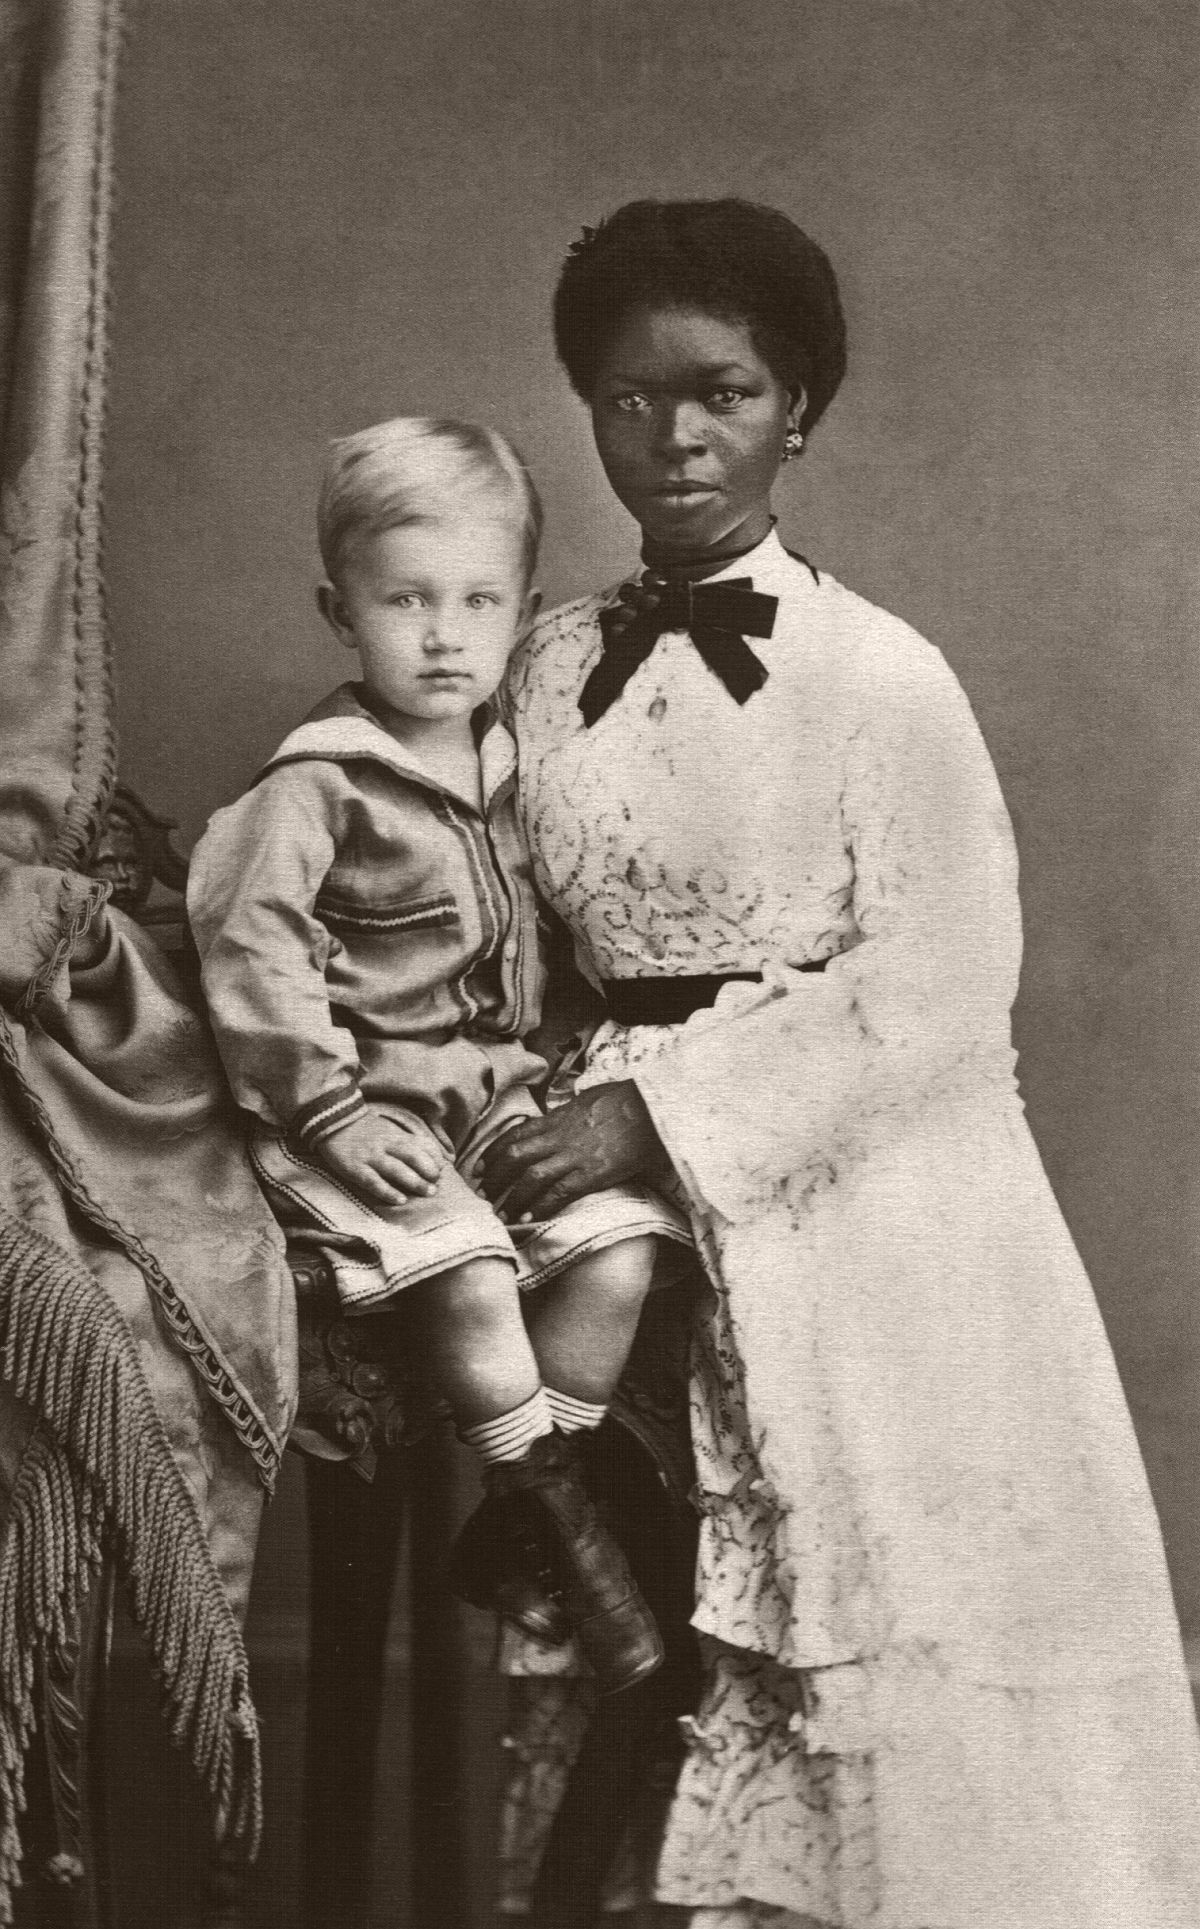 Eugen Keller and his nanny in Pernambuco, Brazil. 1874